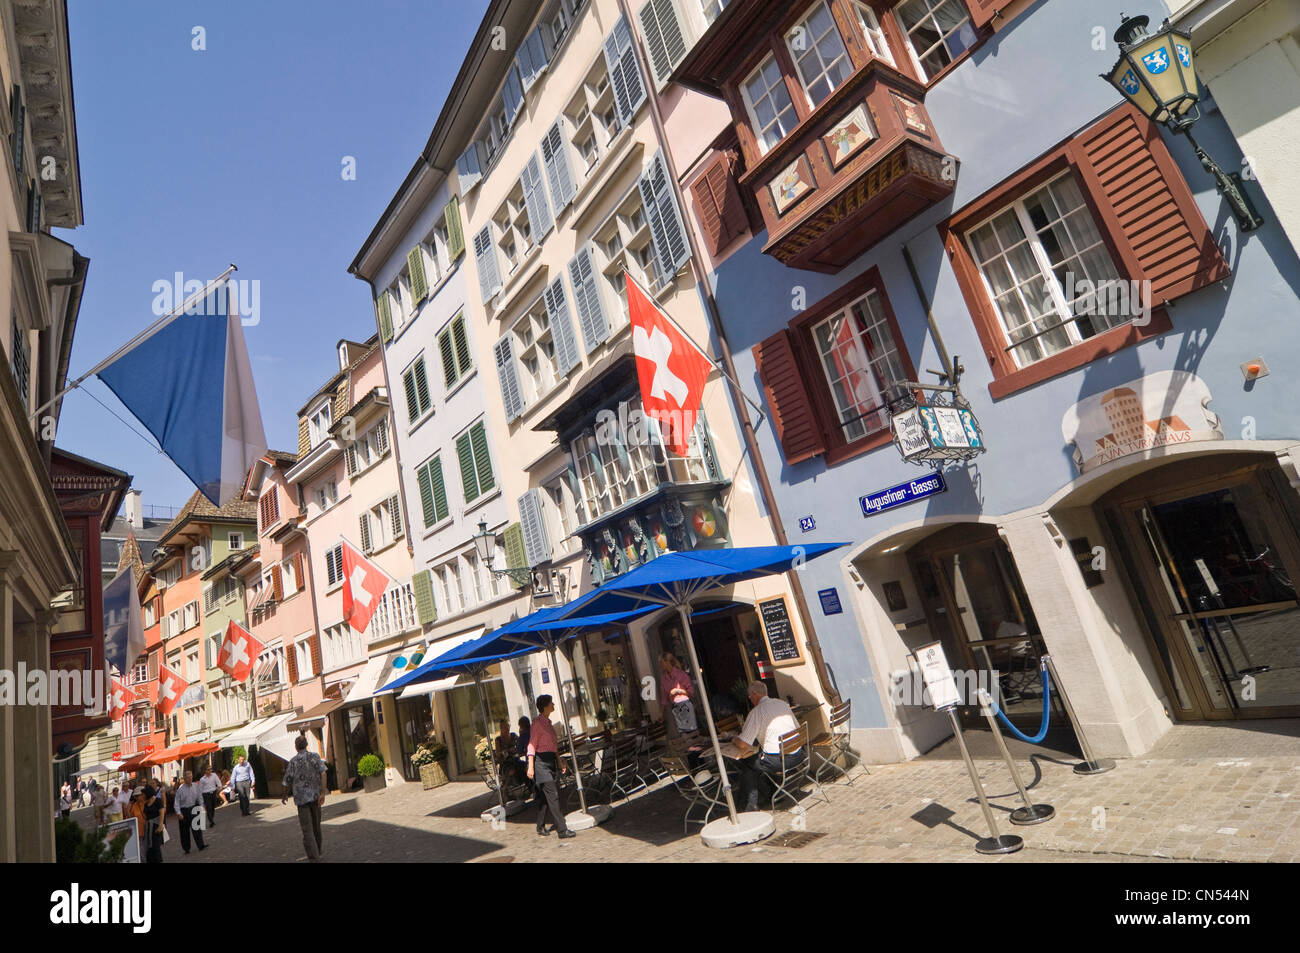 Horizontal wide angle cityscape of Augustinergasse, a popular pedestrianised street in Lindenhof in Zurich on a - Stock Image